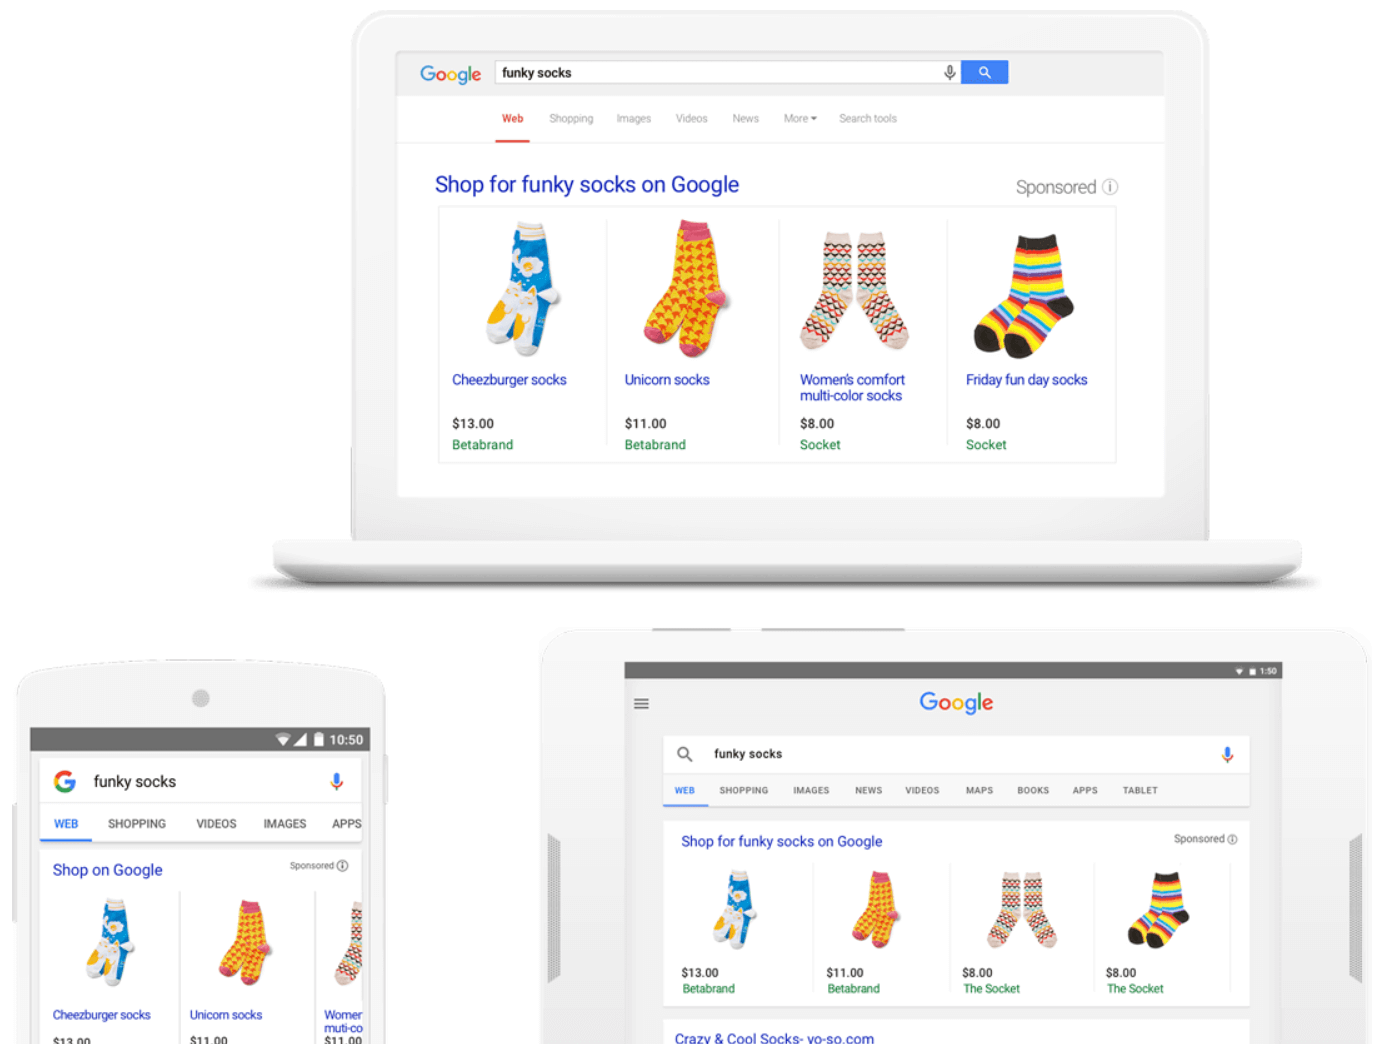 An image of a laptop, tablet and phone showing an example of Google shopping results for funky socks